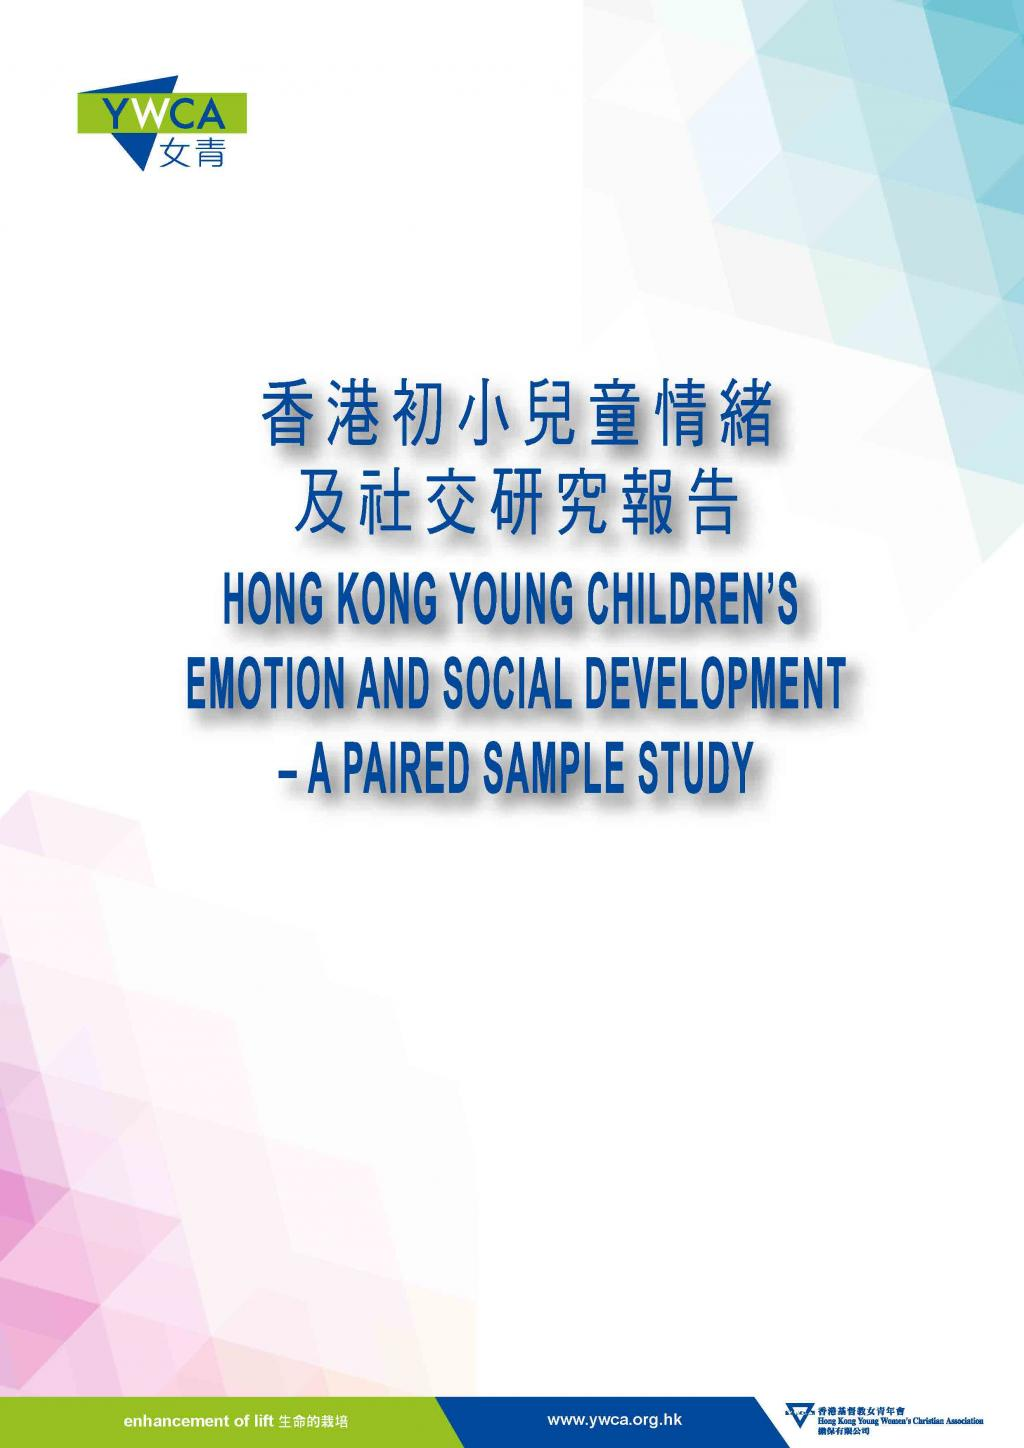 Hong Kong Young Children's Emotion and Social Development - A Paired Sample Study